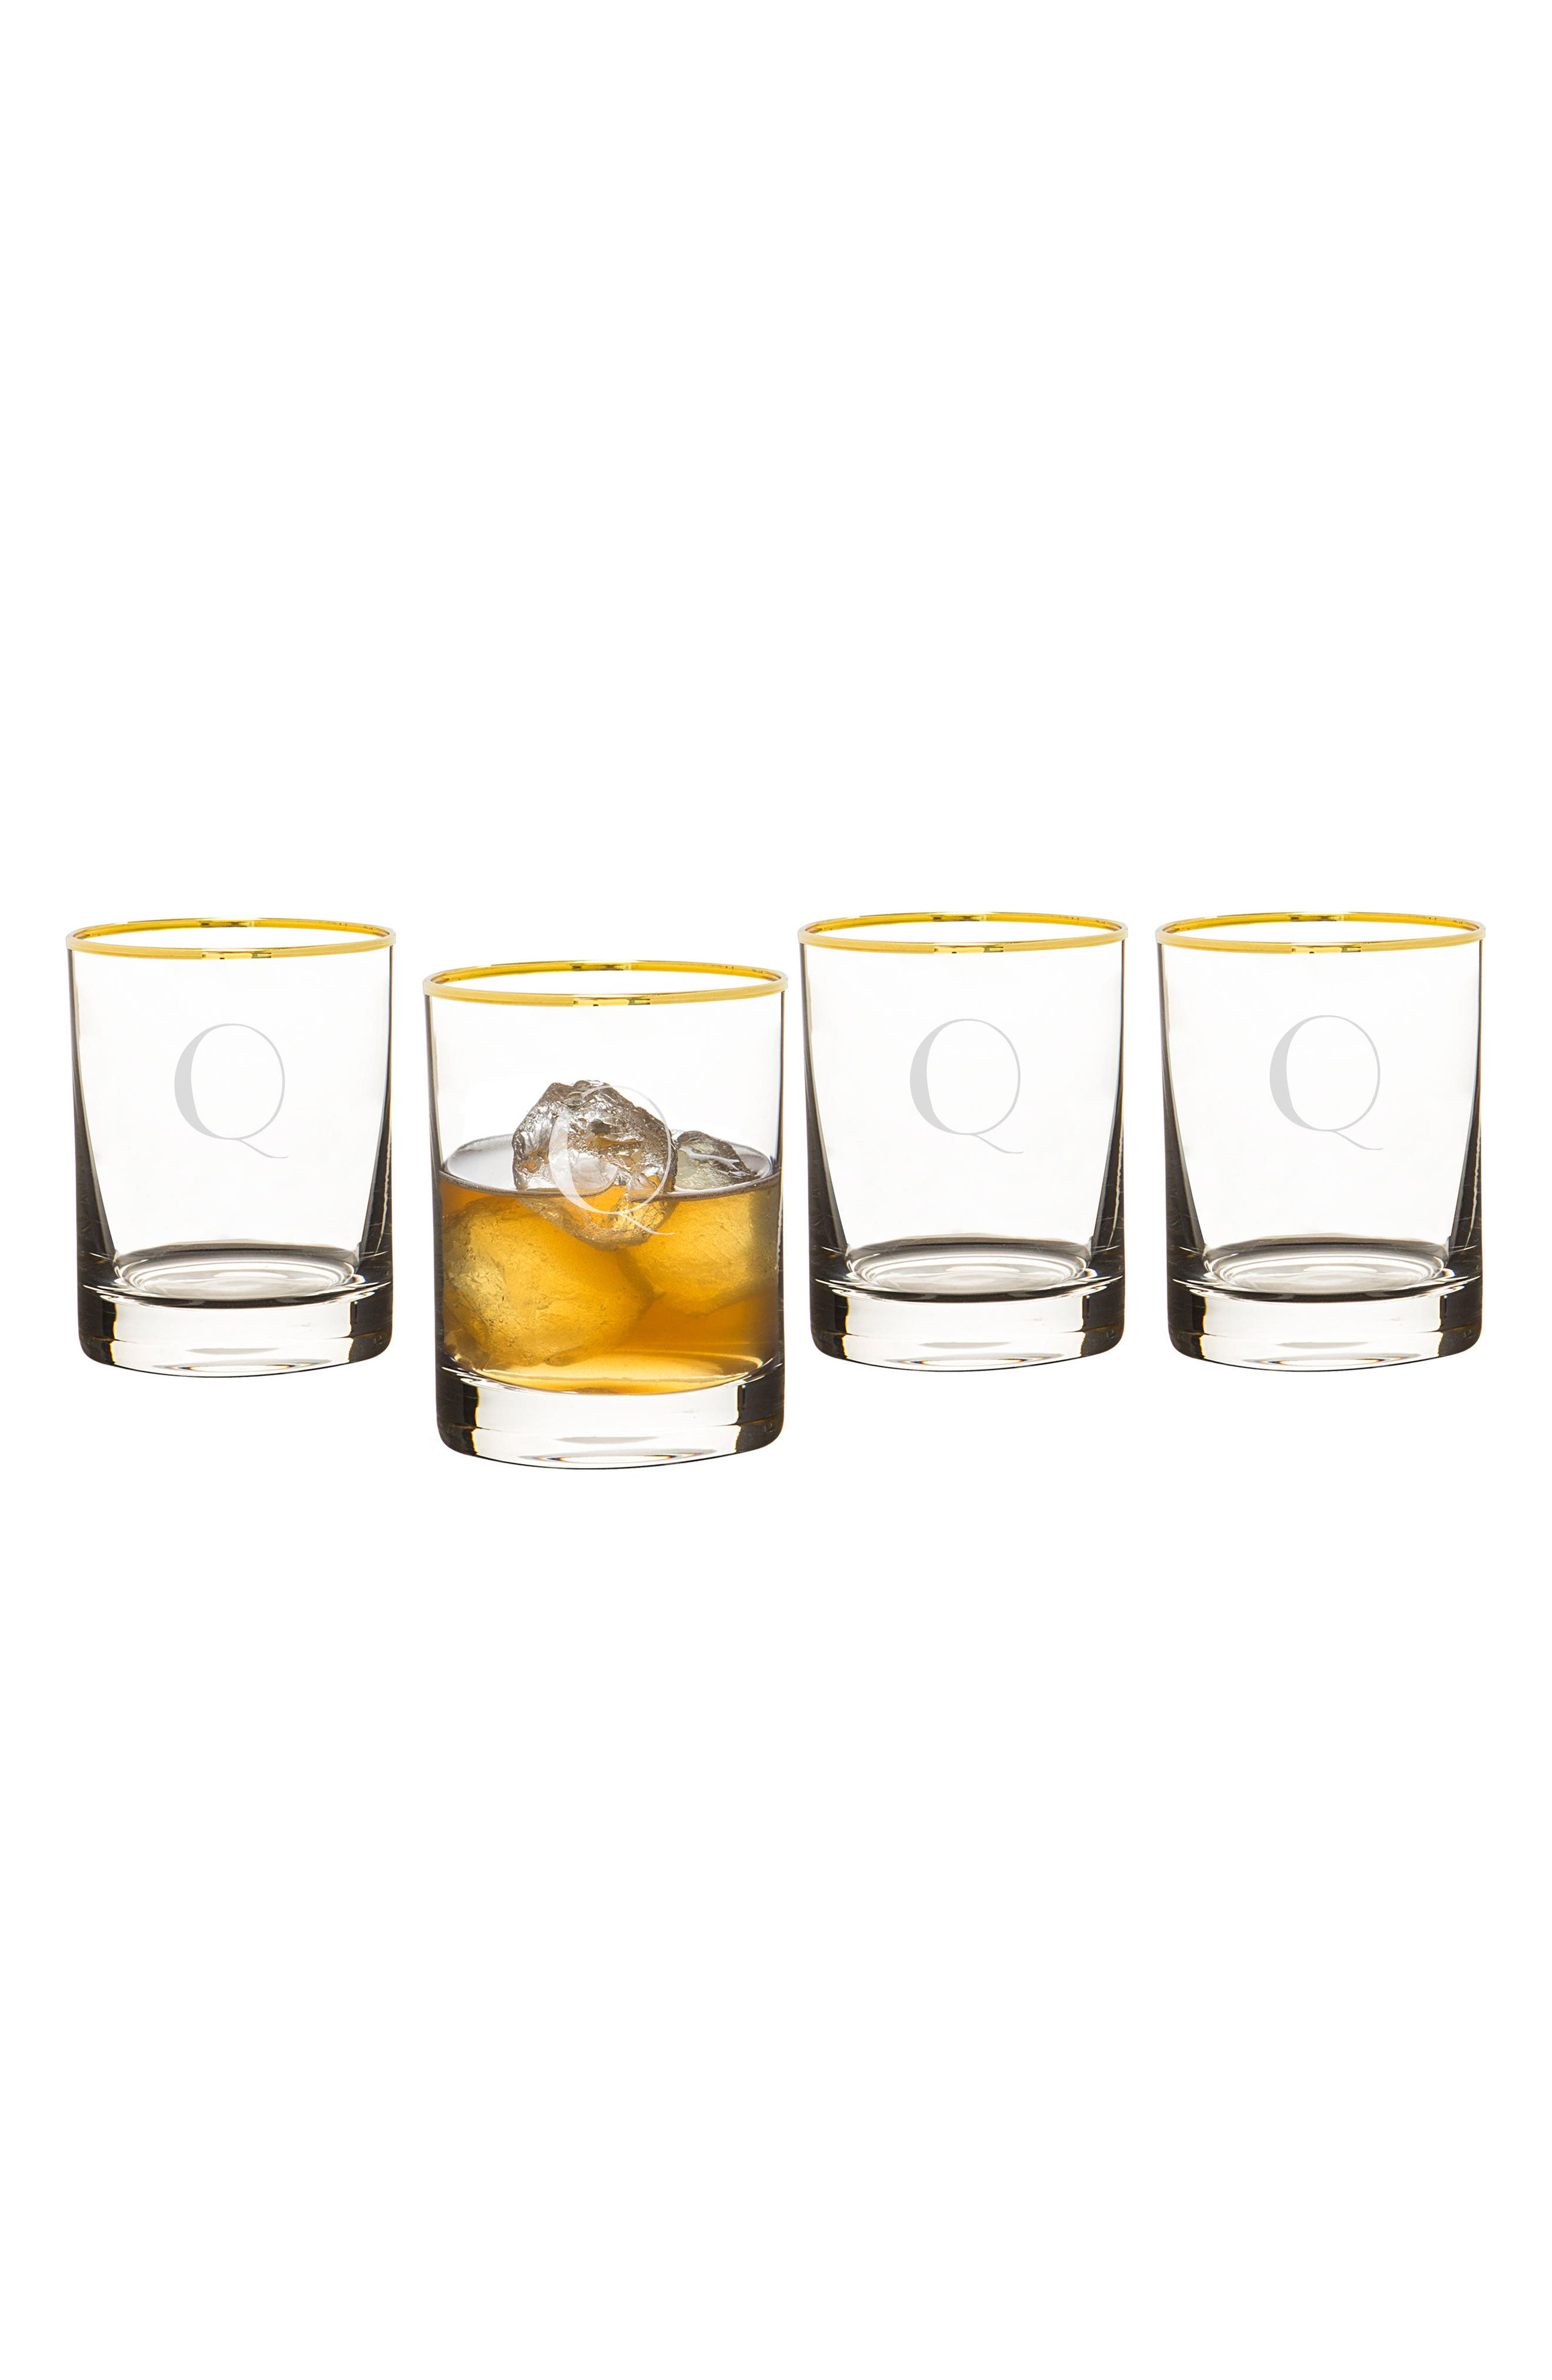 Monogram Set of 4 Double Old Fashioned Glasses,                             Main thumbnail 27, color,